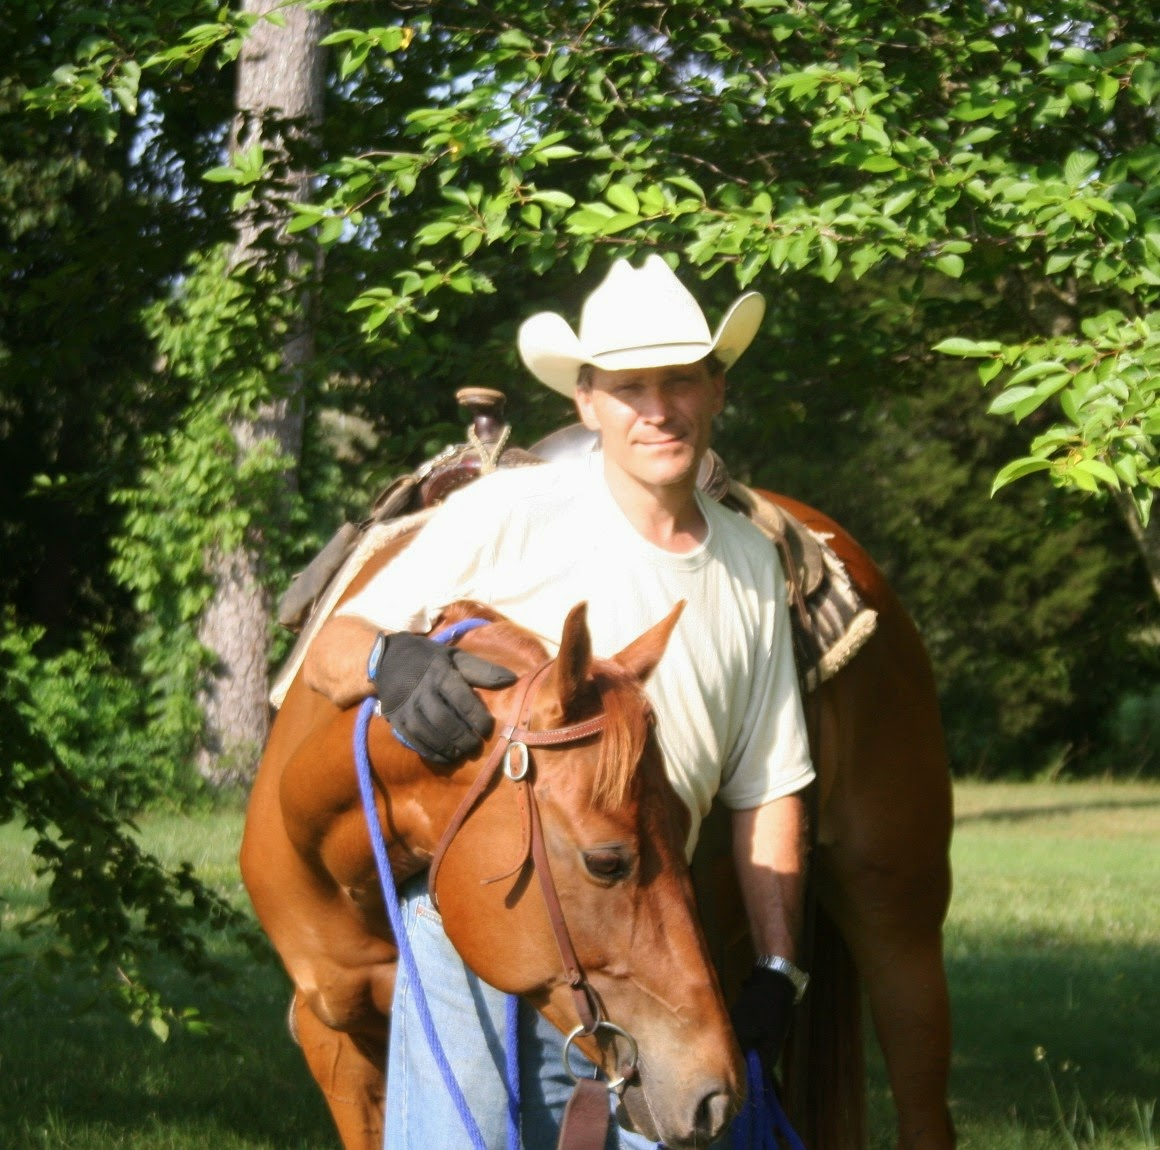 Horse Trainer Image With horse training